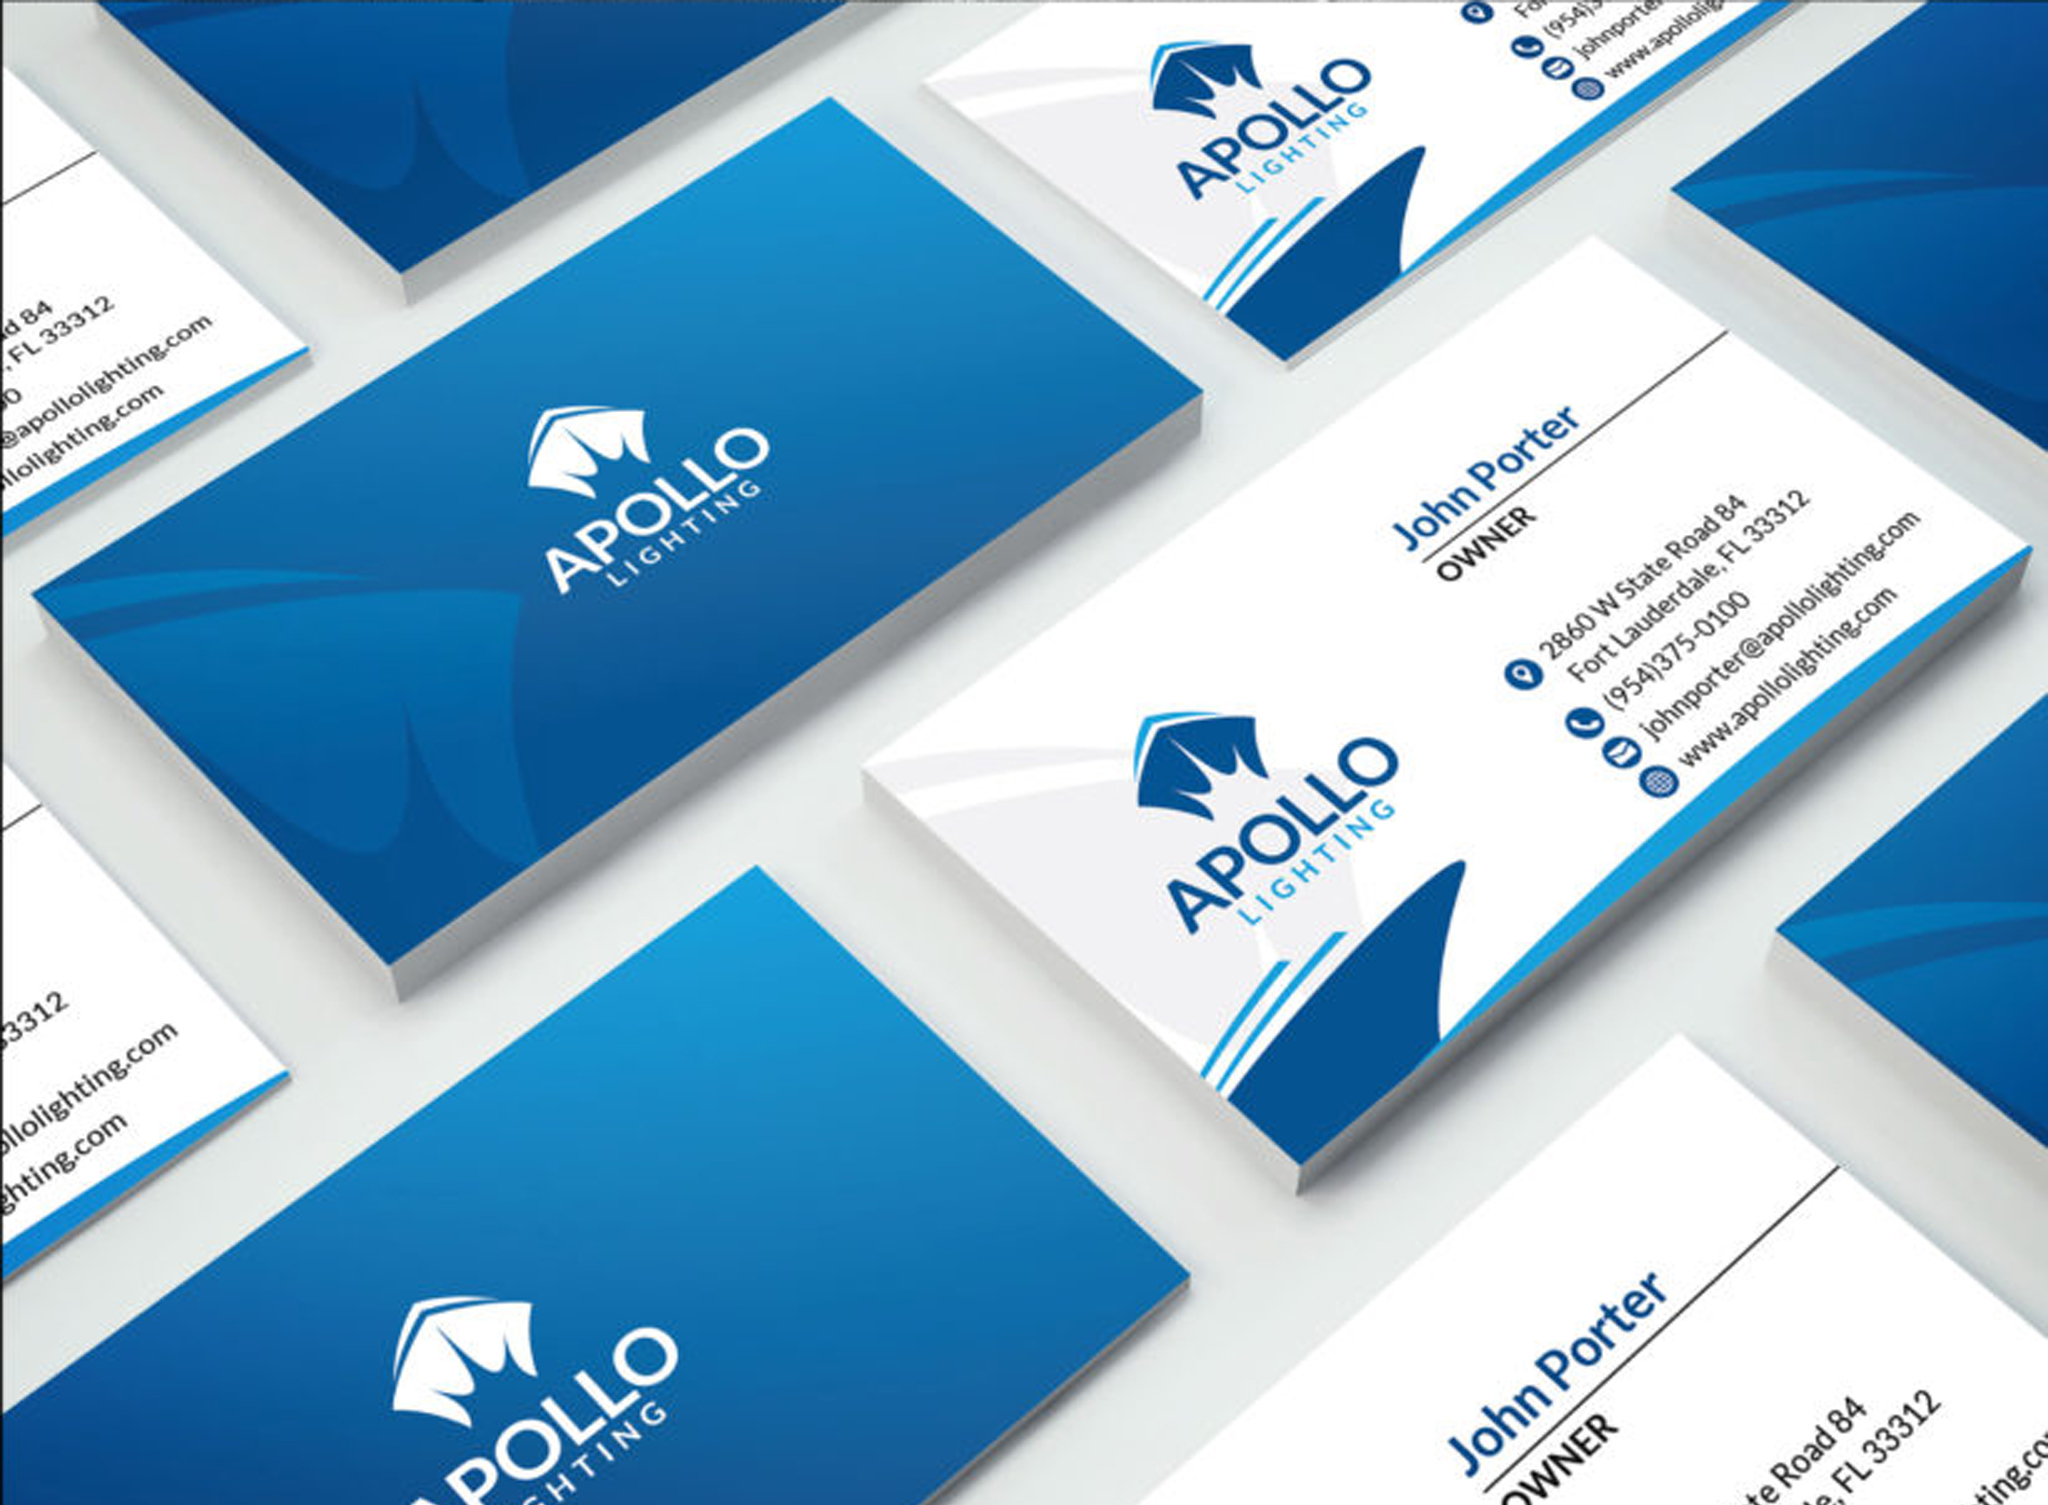 sc 1 st  Brandamos & Apollo Lighting - Fort Lauderdale Marine Lighting Company Branding